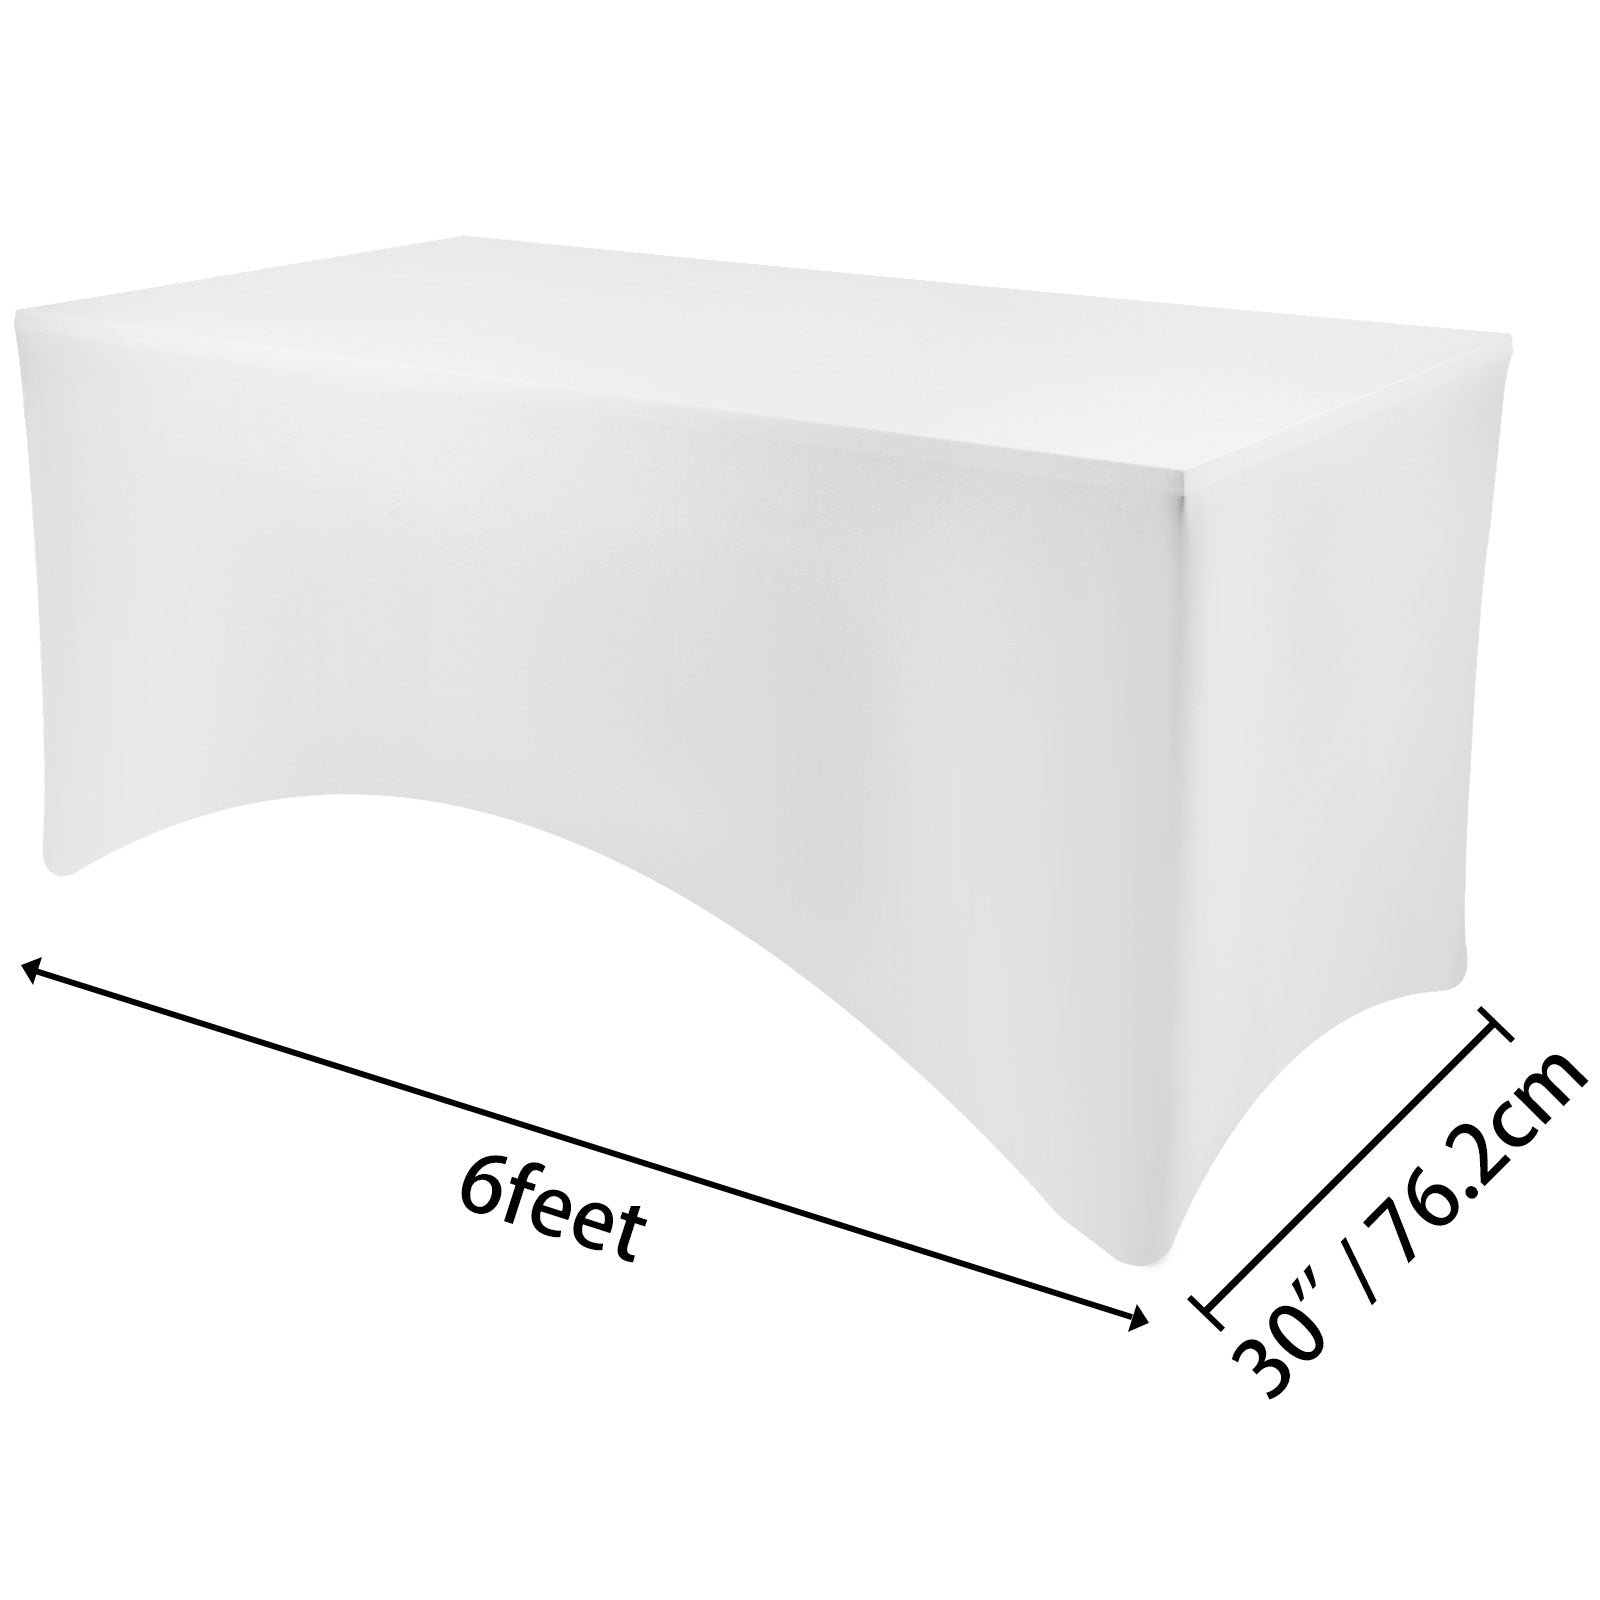 20pcs 6ft Rectangular Stretch Tablecloth Cover Show Protector Dessert Table